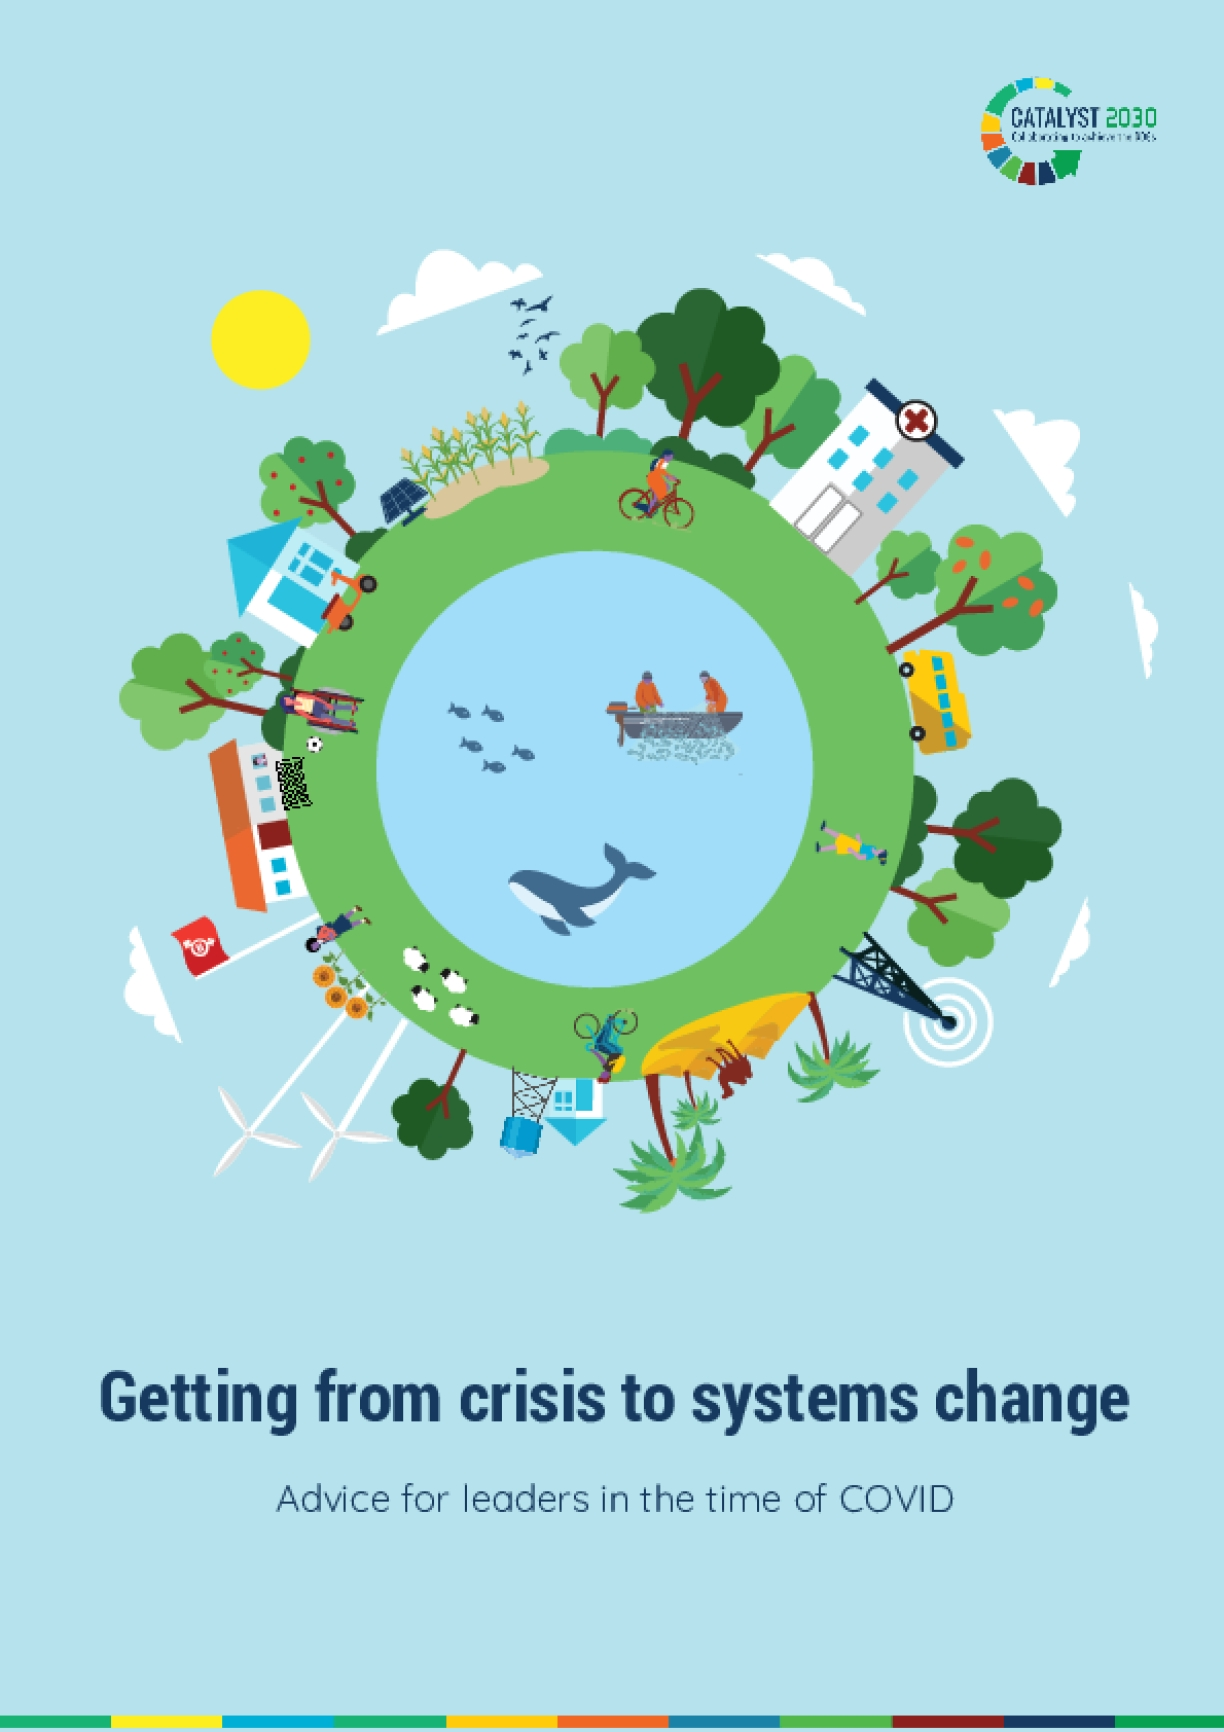 Getting from crisis to systems change: Advice for leaders in the time of COVID